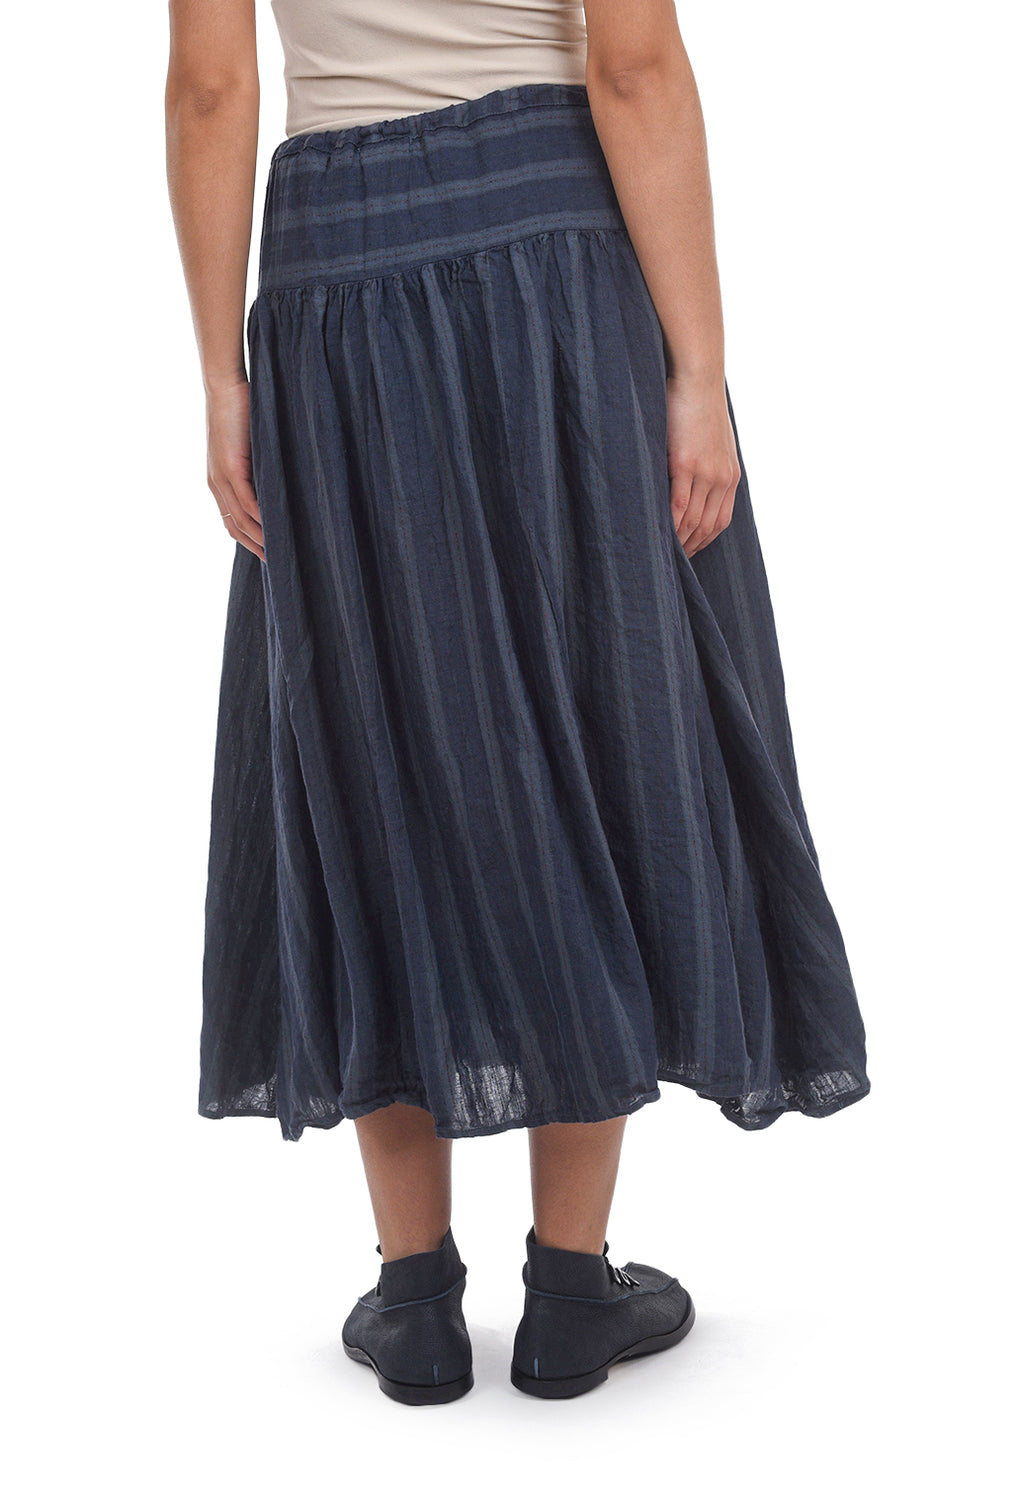 CP Shades Linen Bonay Skirt, Bluegreen